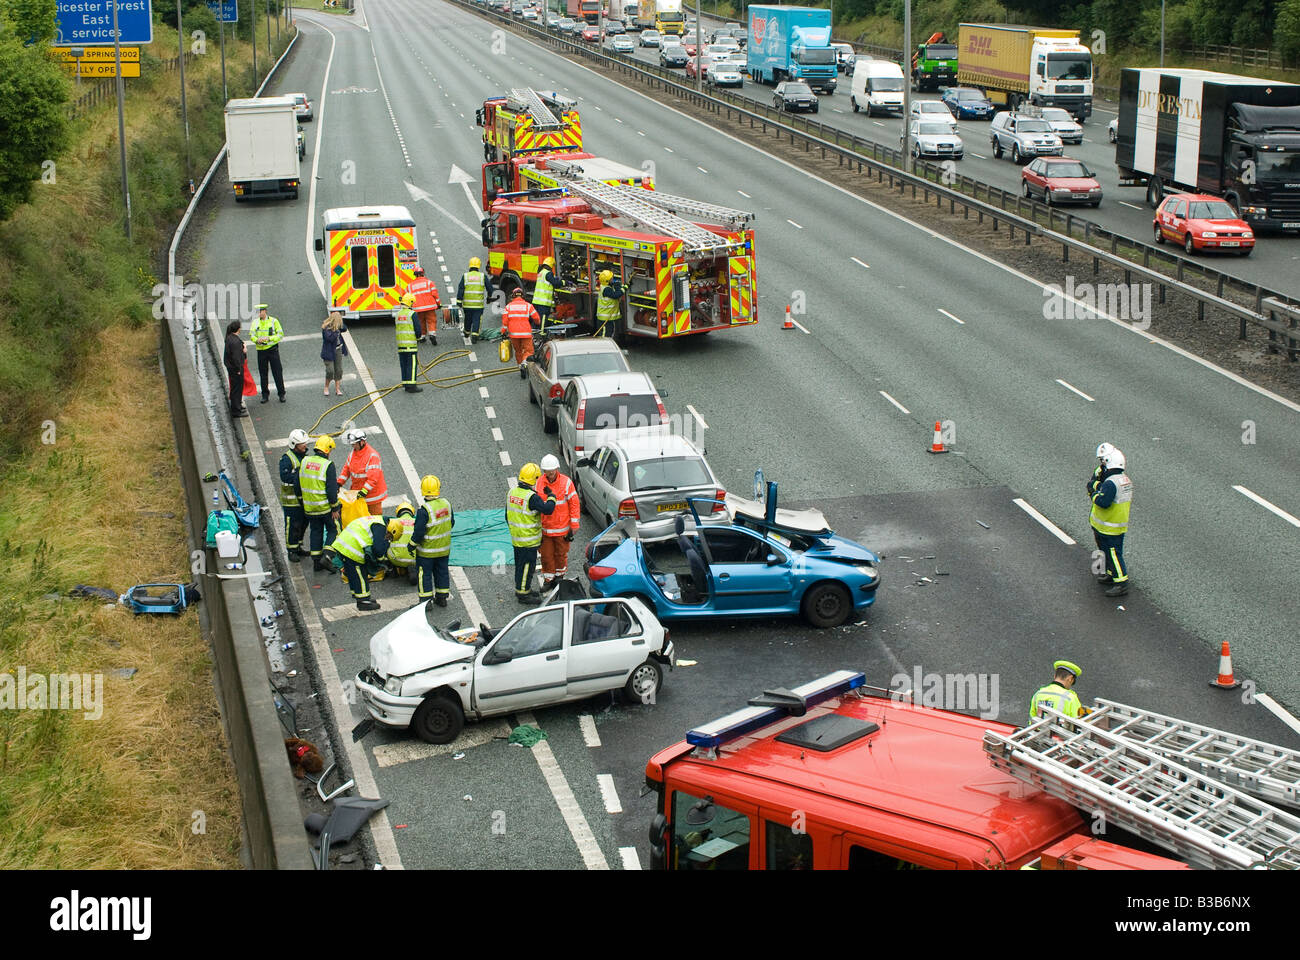 emergency services attending a nasty road traffic accident on a motorway as traffic tails back on the opposite carriageway - Stock Image